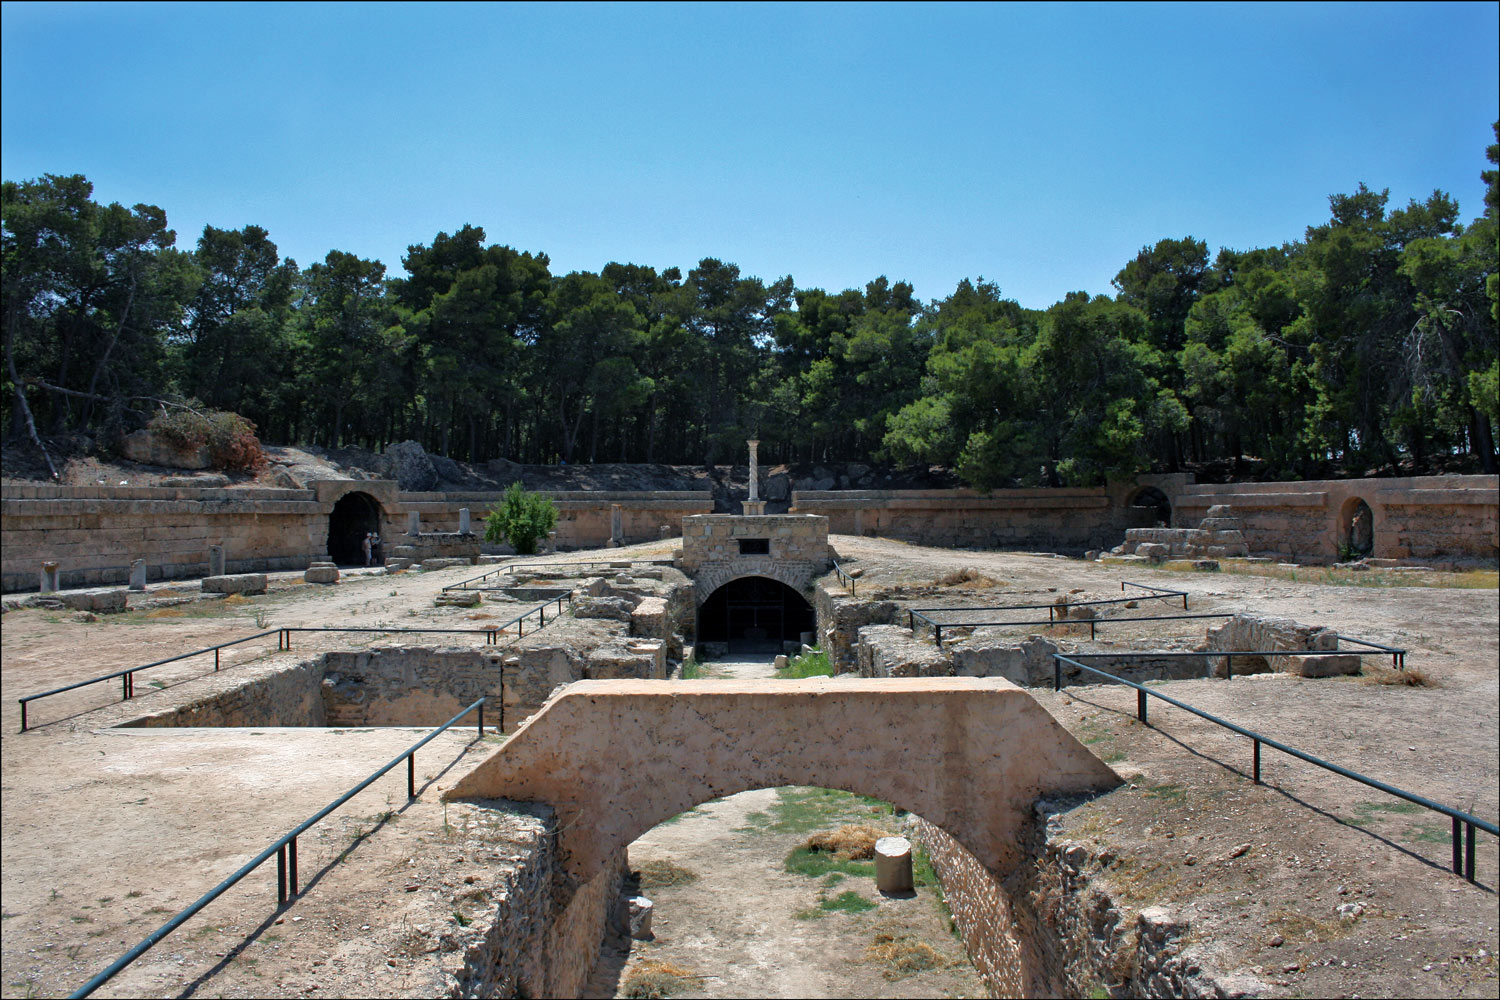 The Roman Amphitheater in Carthage